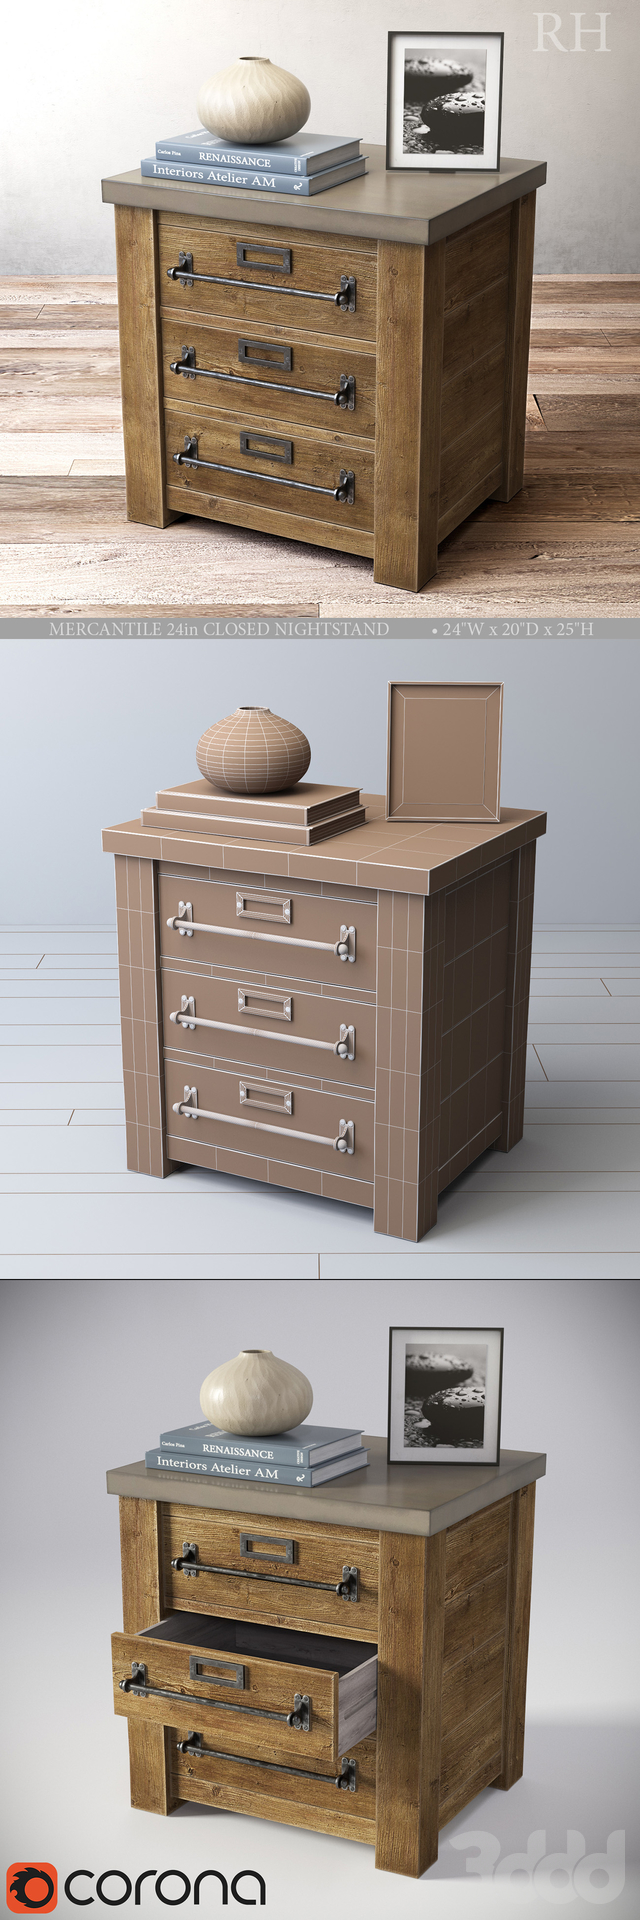 MERCANTILE 24in CLOSED NIGHTSTAND